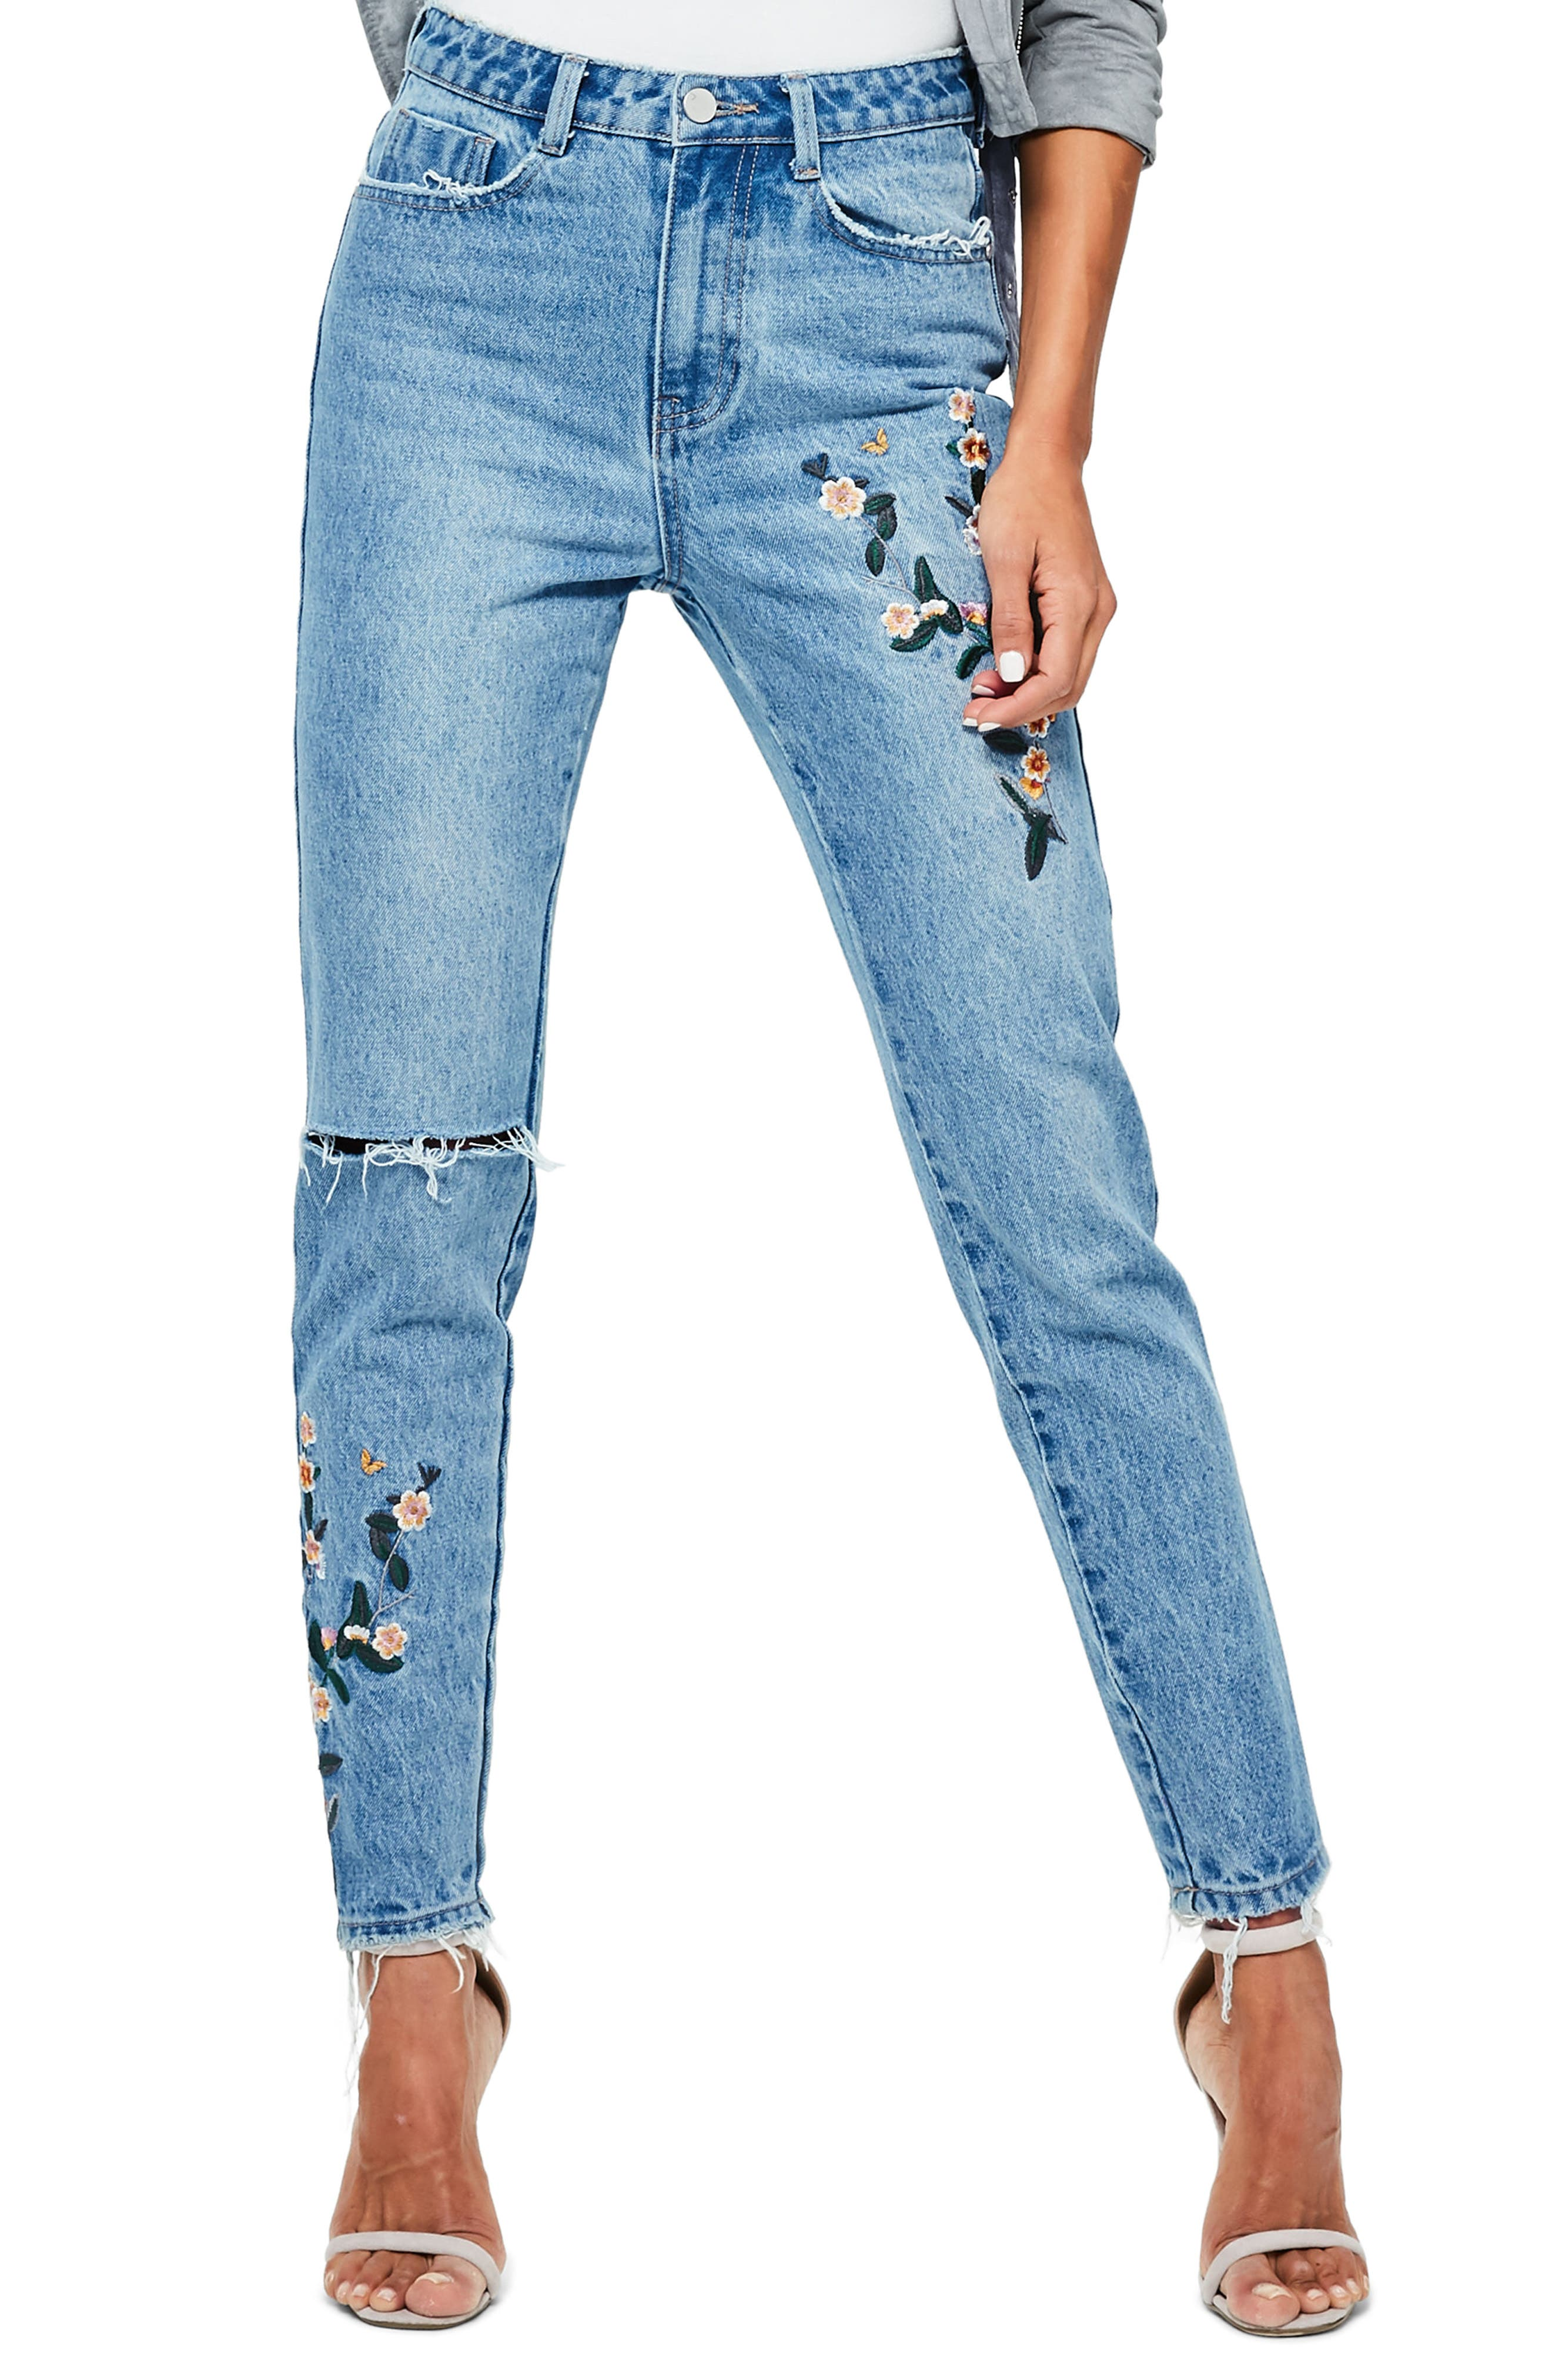 Alternate Image 1 Selected - Missguided Riot Ripped High Waist Embroidered Jeans